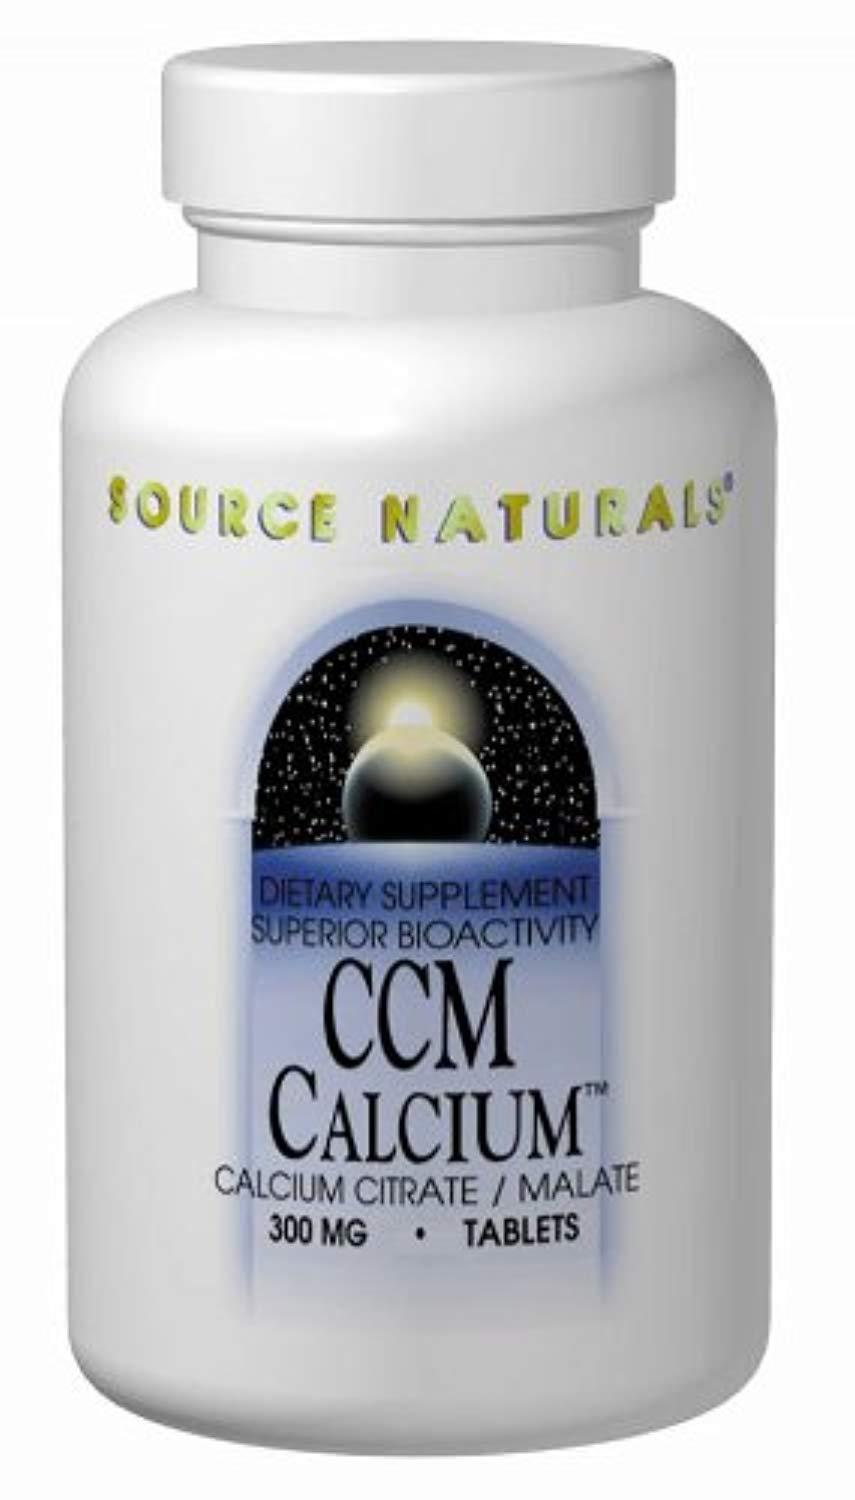 CCM Calcium Citrate/Malate Source Naturals, Inc. 60 Tabs